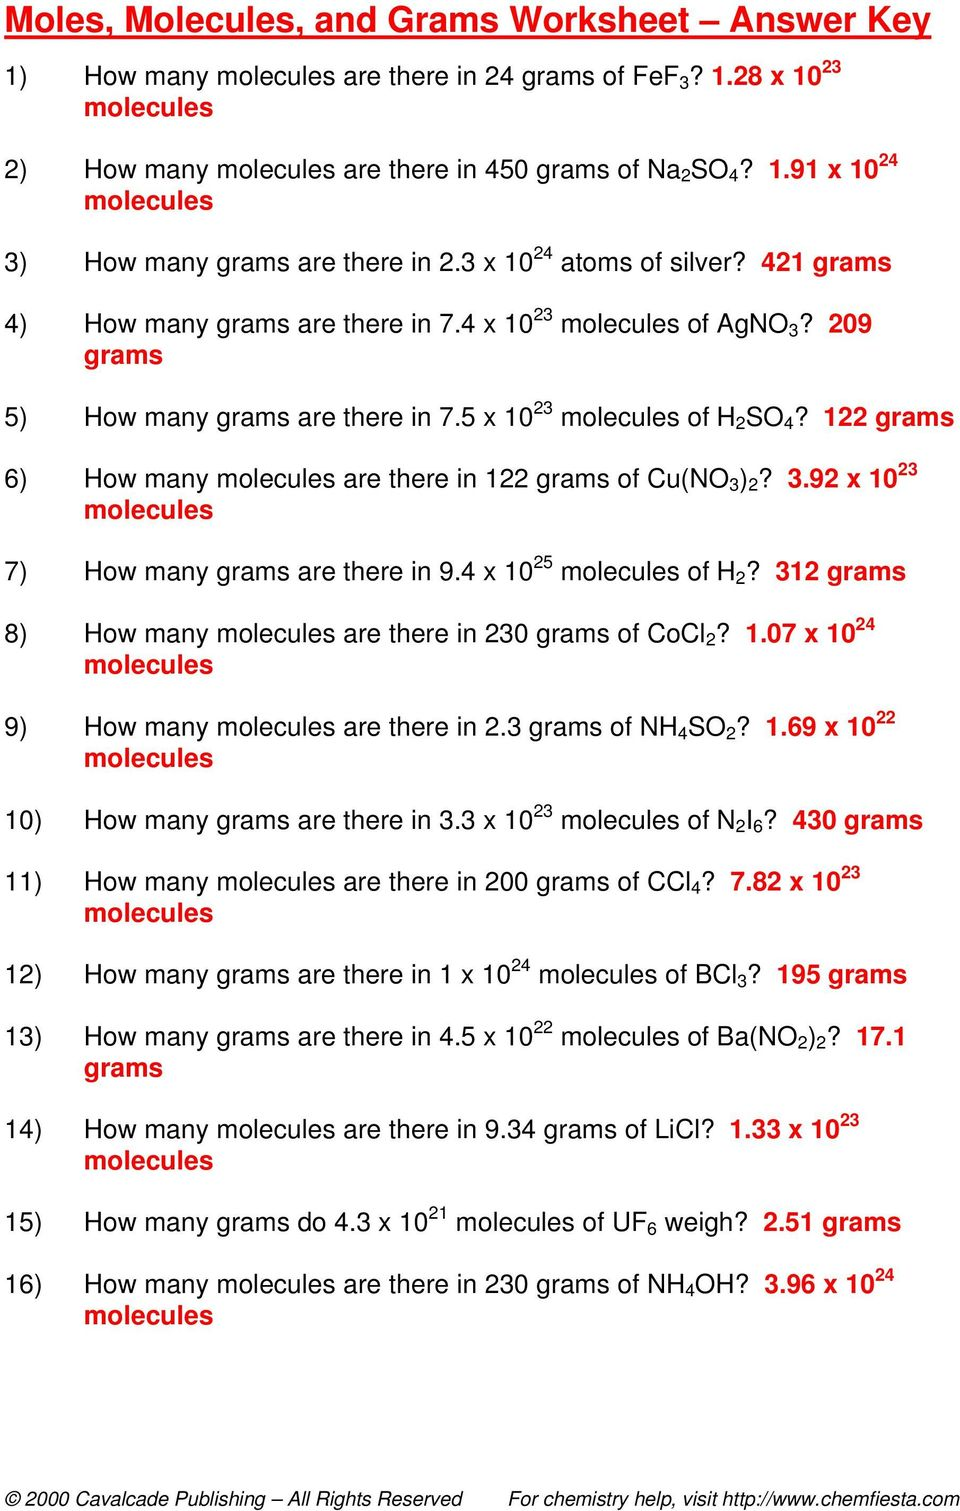 Worksheets Moles Molecules And Grams Worksheet Answer Key molecules and grams worksheet answer key 122 6 how many are there in of cuno 3 4 molar mass key